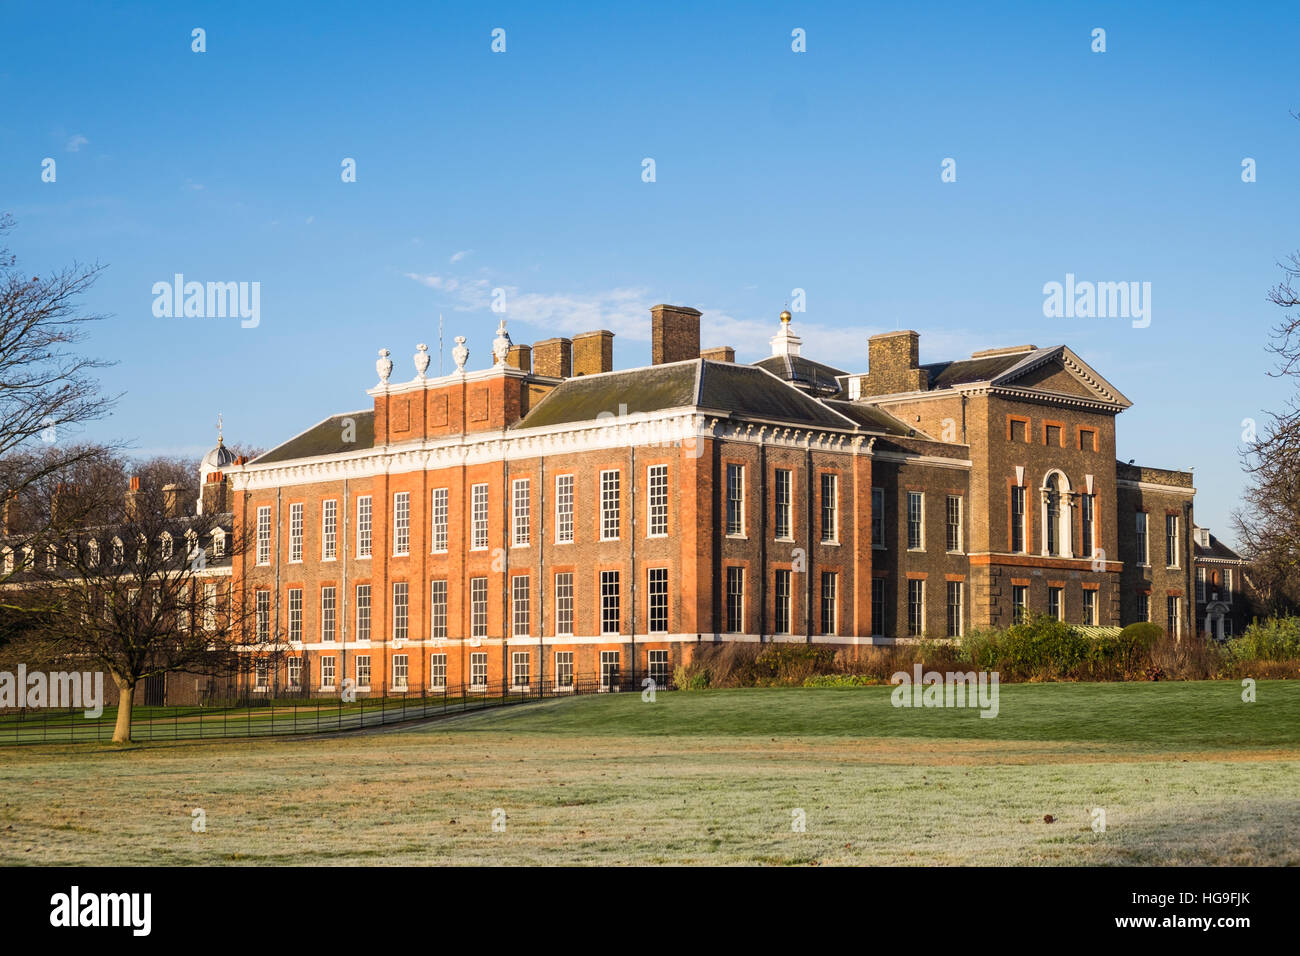 Kensington Palace, London, England, U.K. - Stock Image